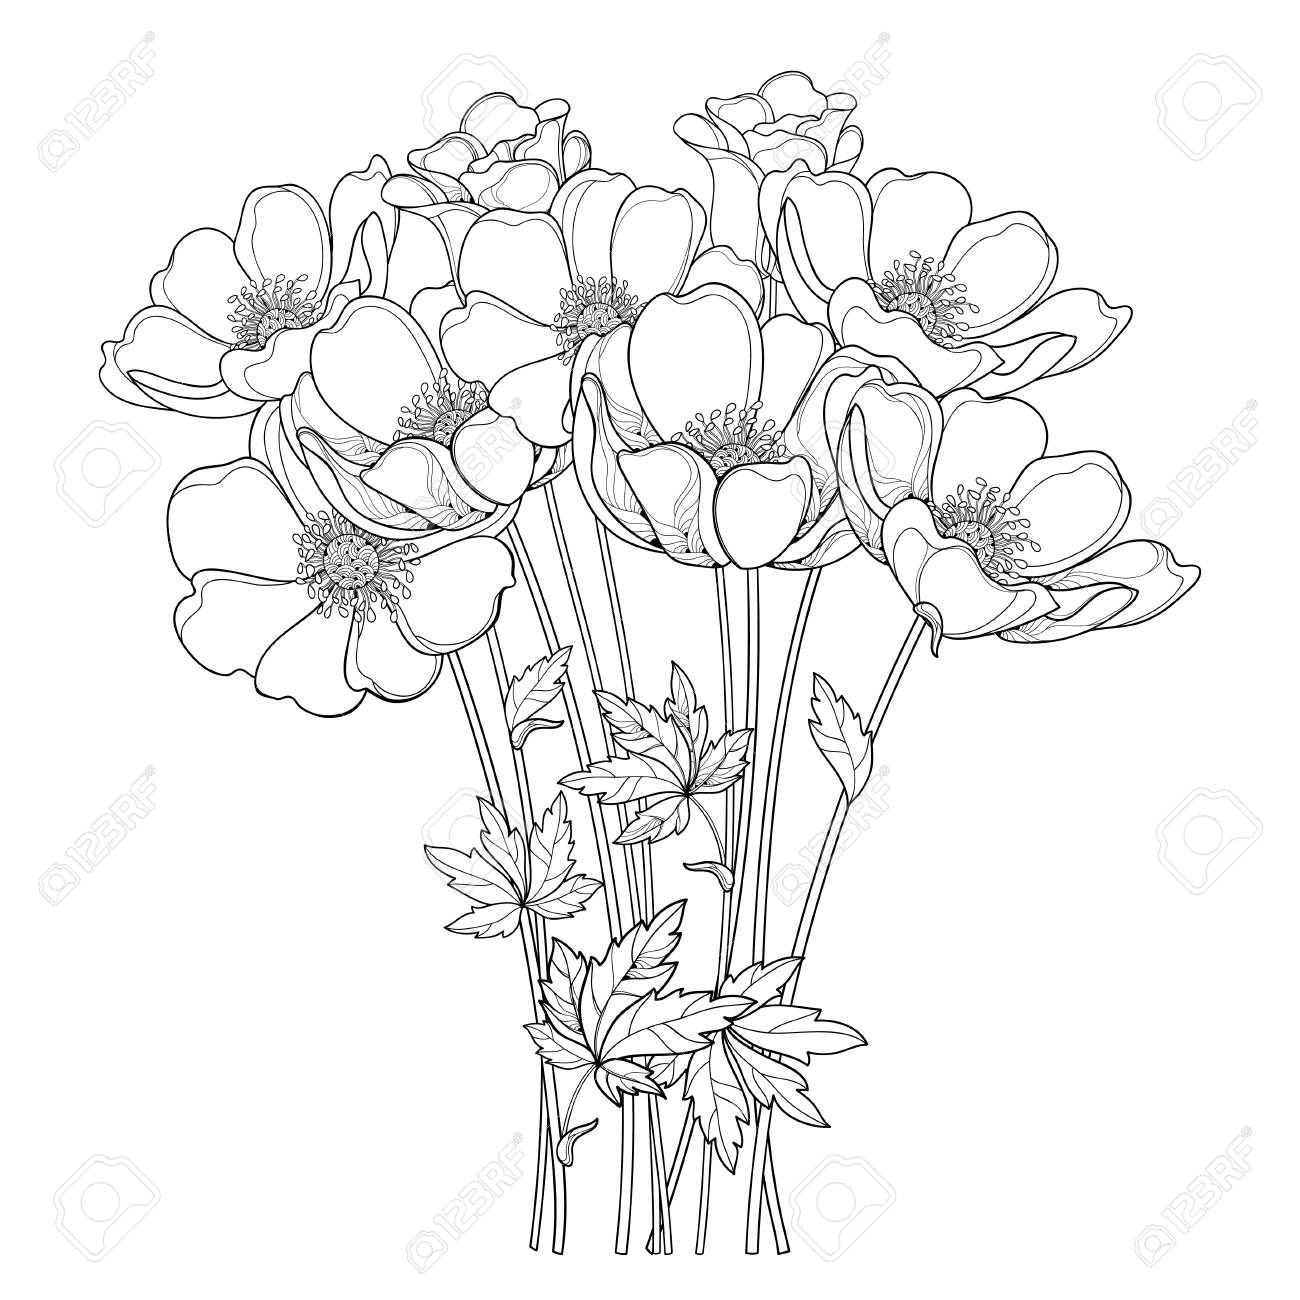 Hand drawing bouquet with outline anemone flower or windflower bud and leaf in black isolated